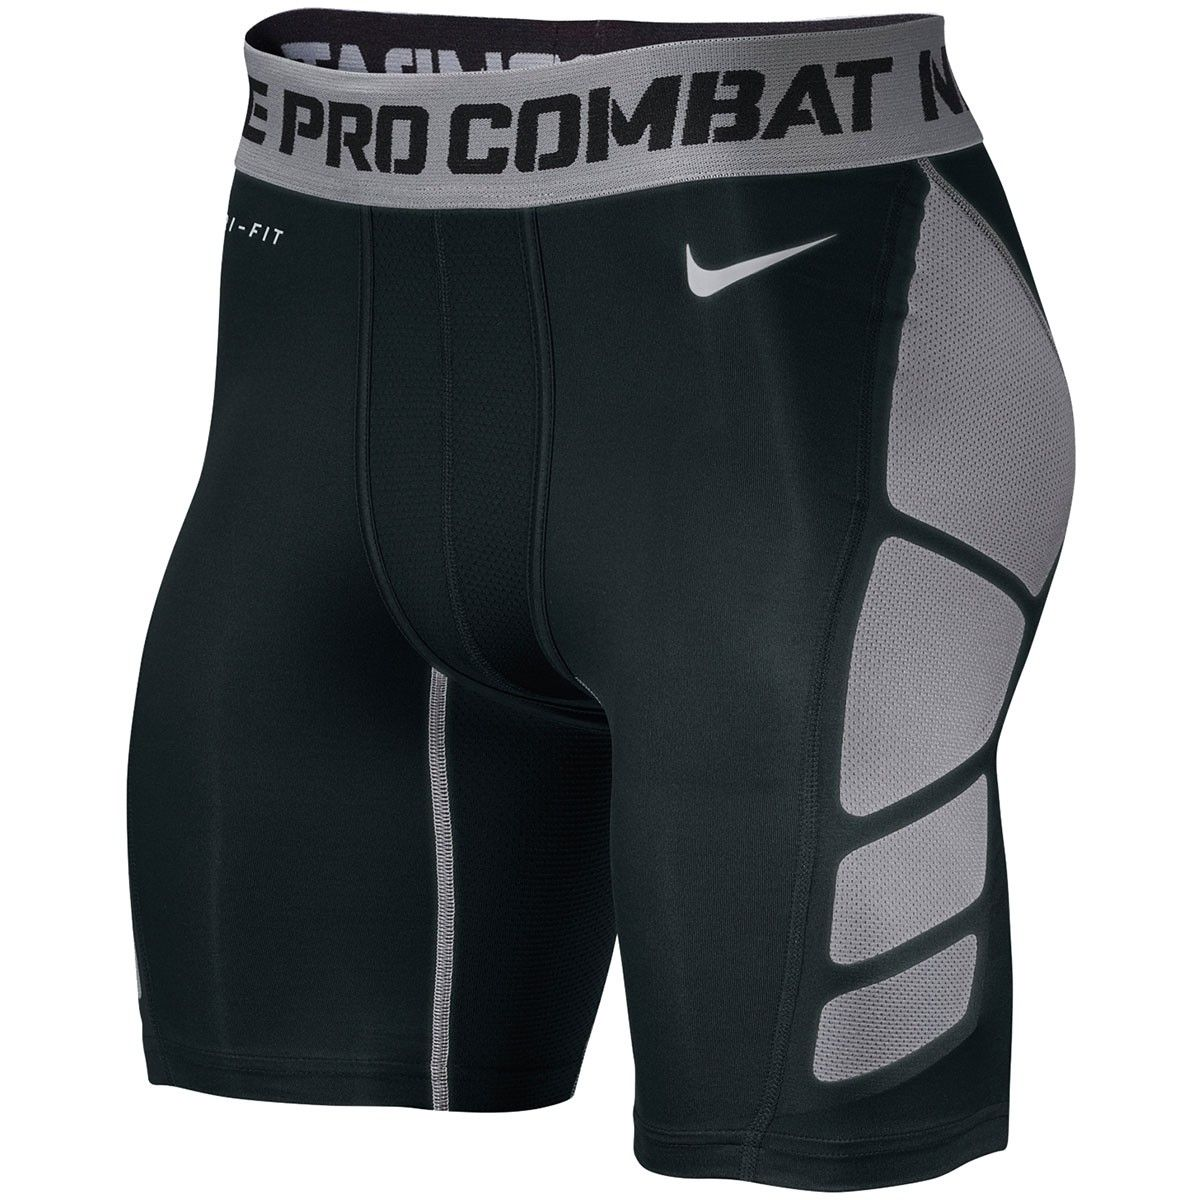 Nike Pro Combat Compression Shorts | Nike Clothing | Pinterest | Wellness fitness Fitness ...